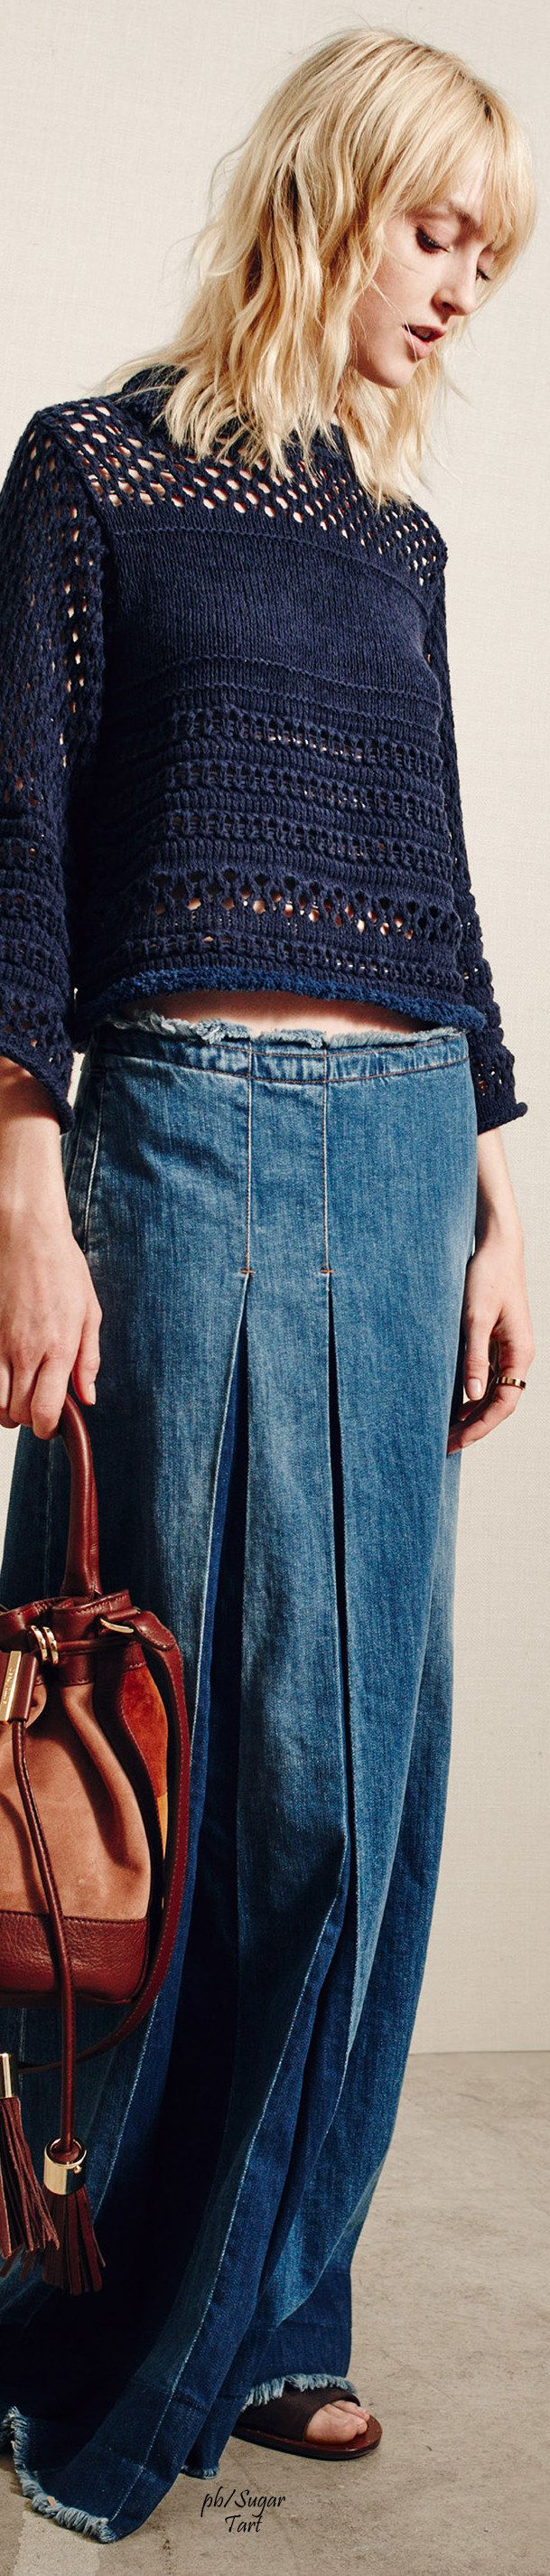 See by Chloe S-16 RTW: denim maxi skirt, knitted sweater.                                                                                                                                                     Mais